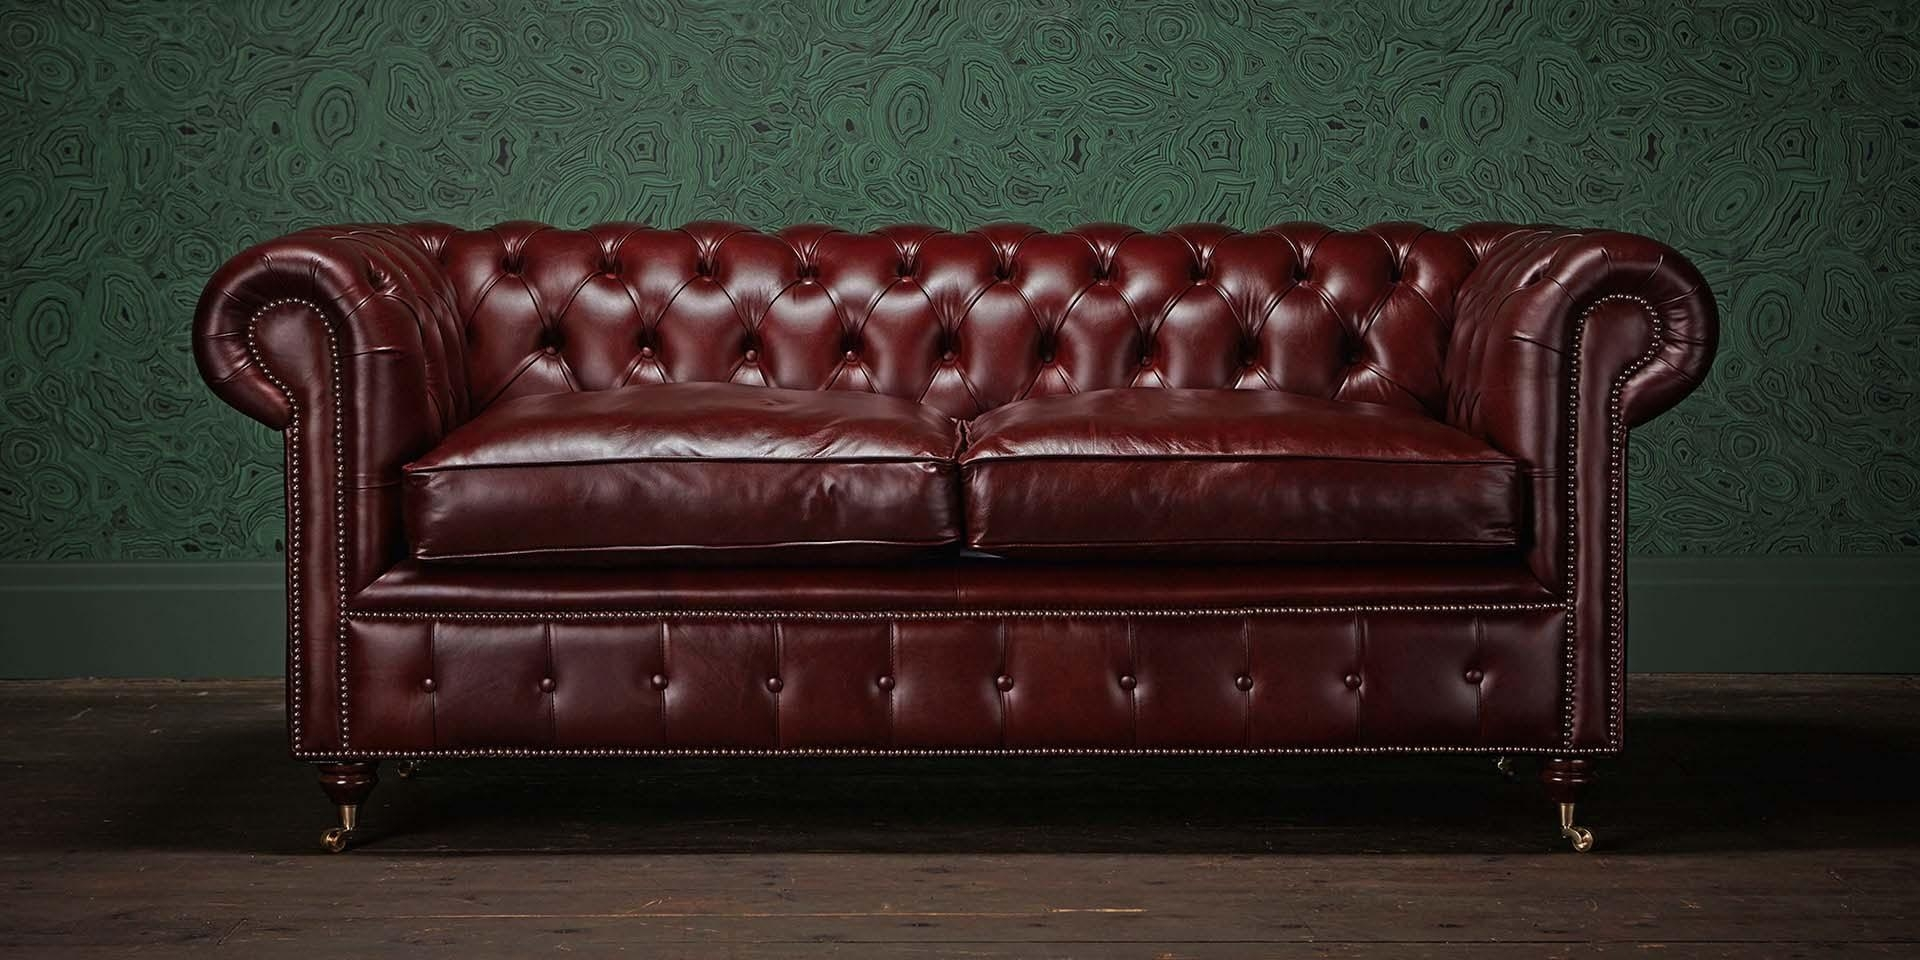 Chesterfields Of England | The Original Chesterfield Company For Leather Chesterfield Sofas (Image 8 of 20)